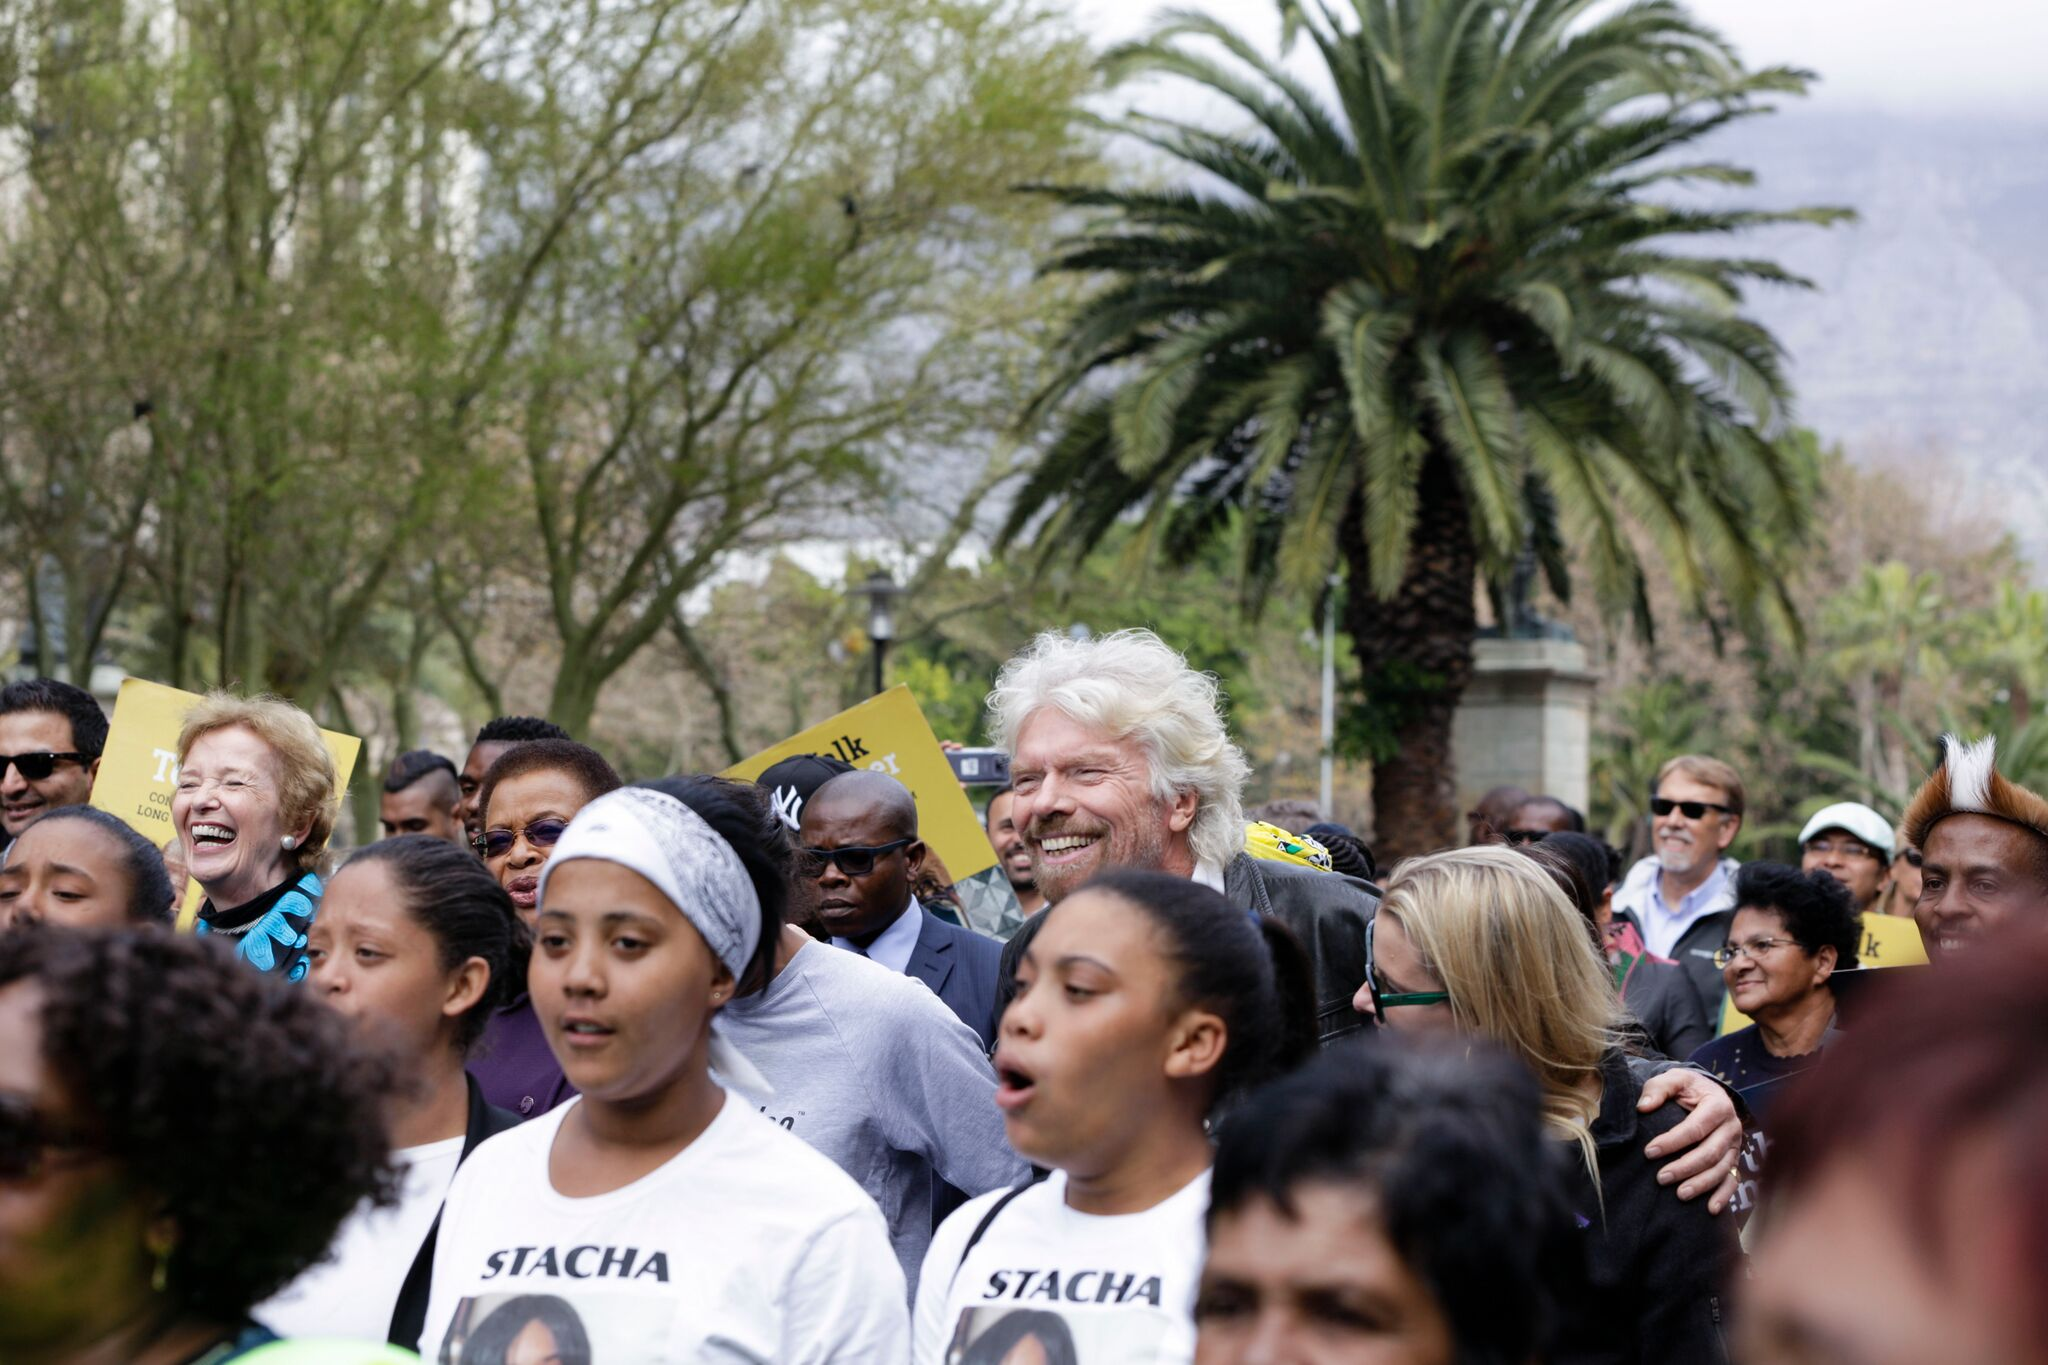 As Madiba would have wanted, everyone was smiling https://t.co/qlTYRZHUoZ #WalkTogether @TheElders https://t.co/WUnJJAZKBF